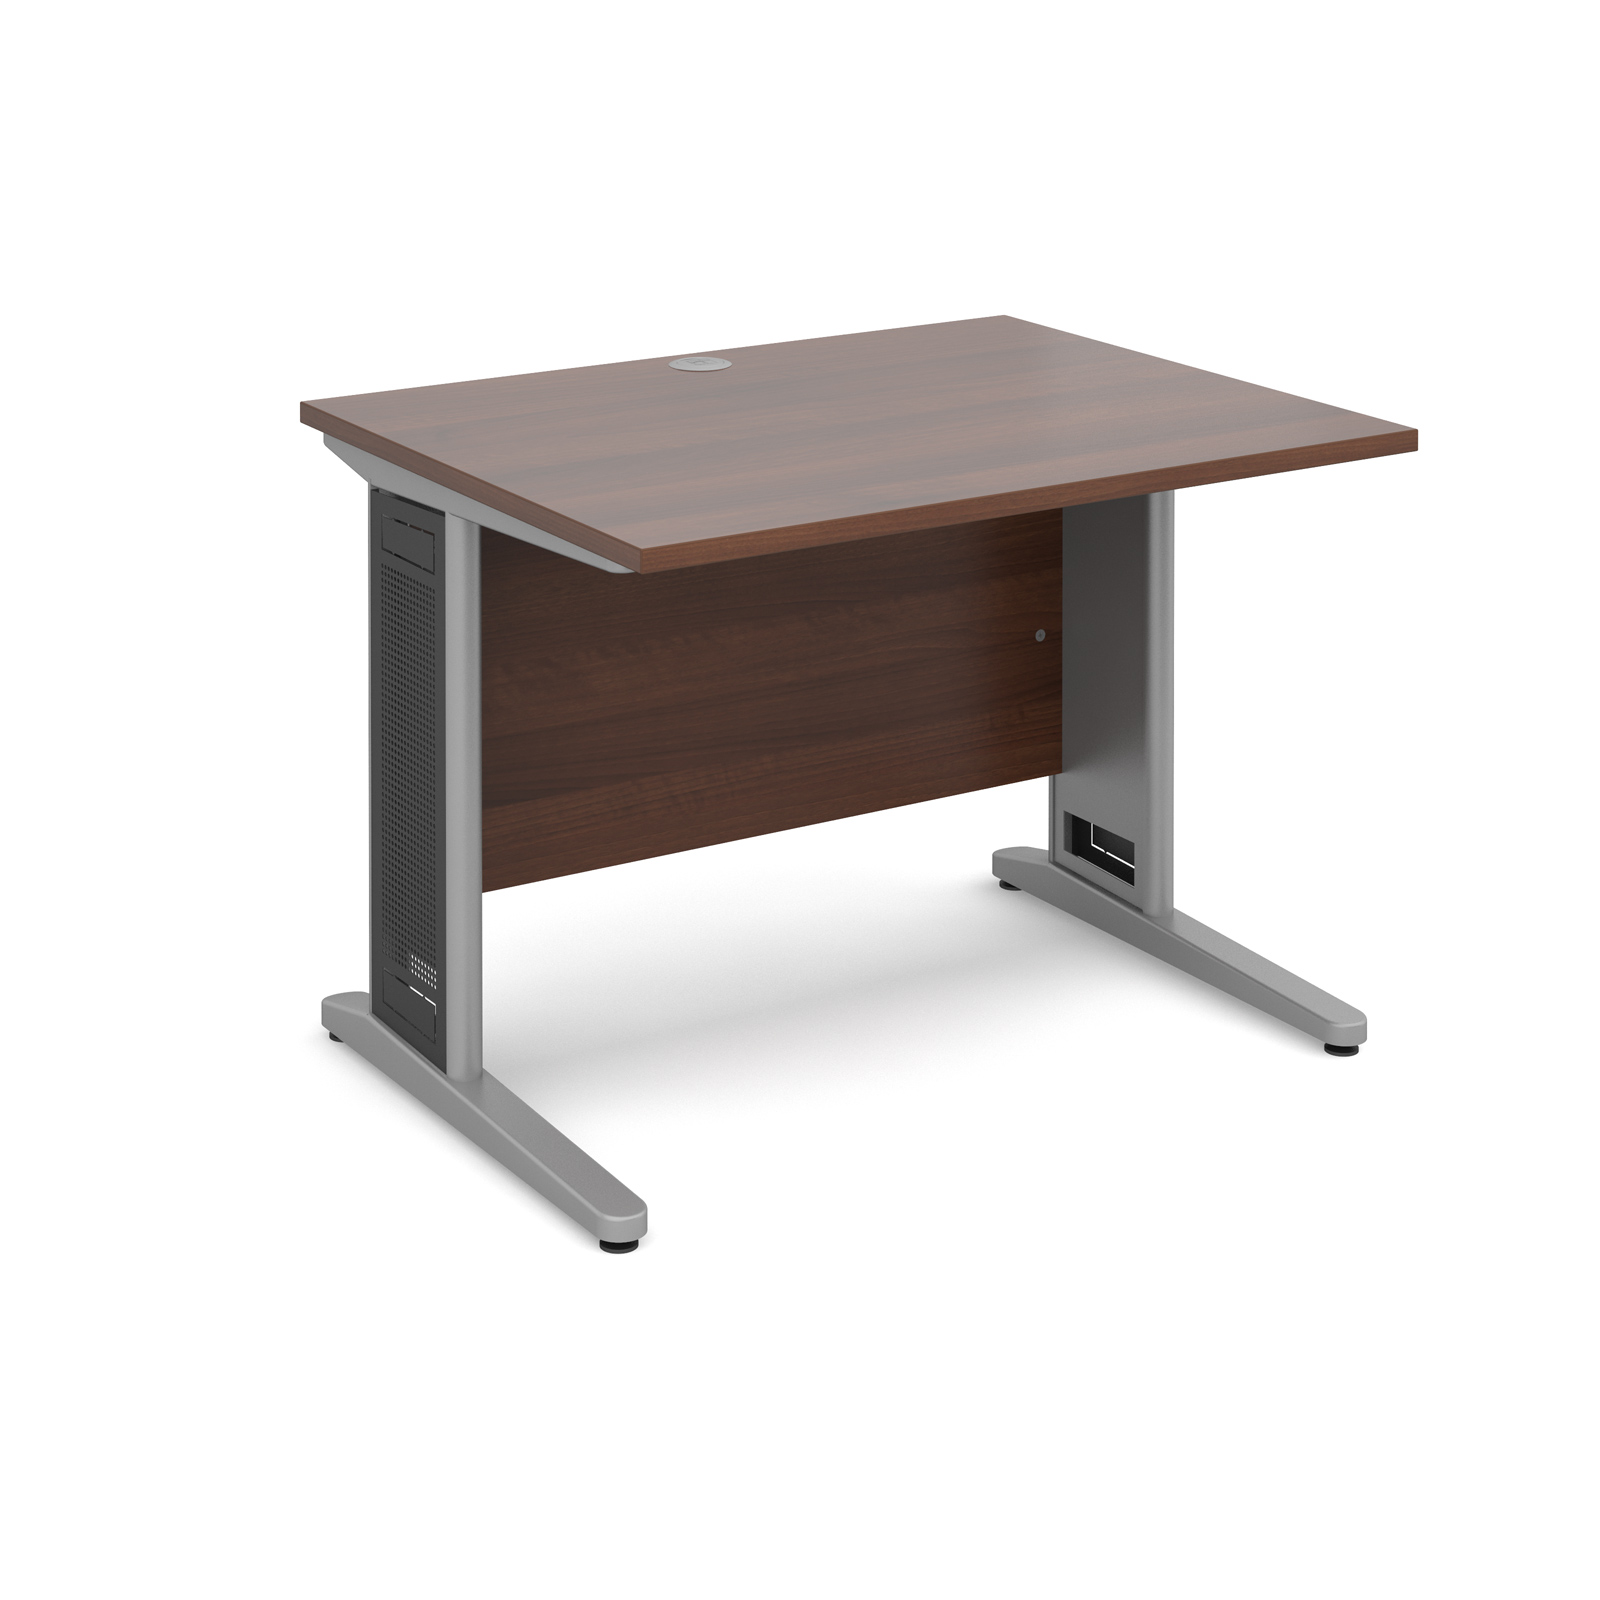 Largo straight desk 1000mm x 800mm - silver cantilever frame with removable grill, walnut top